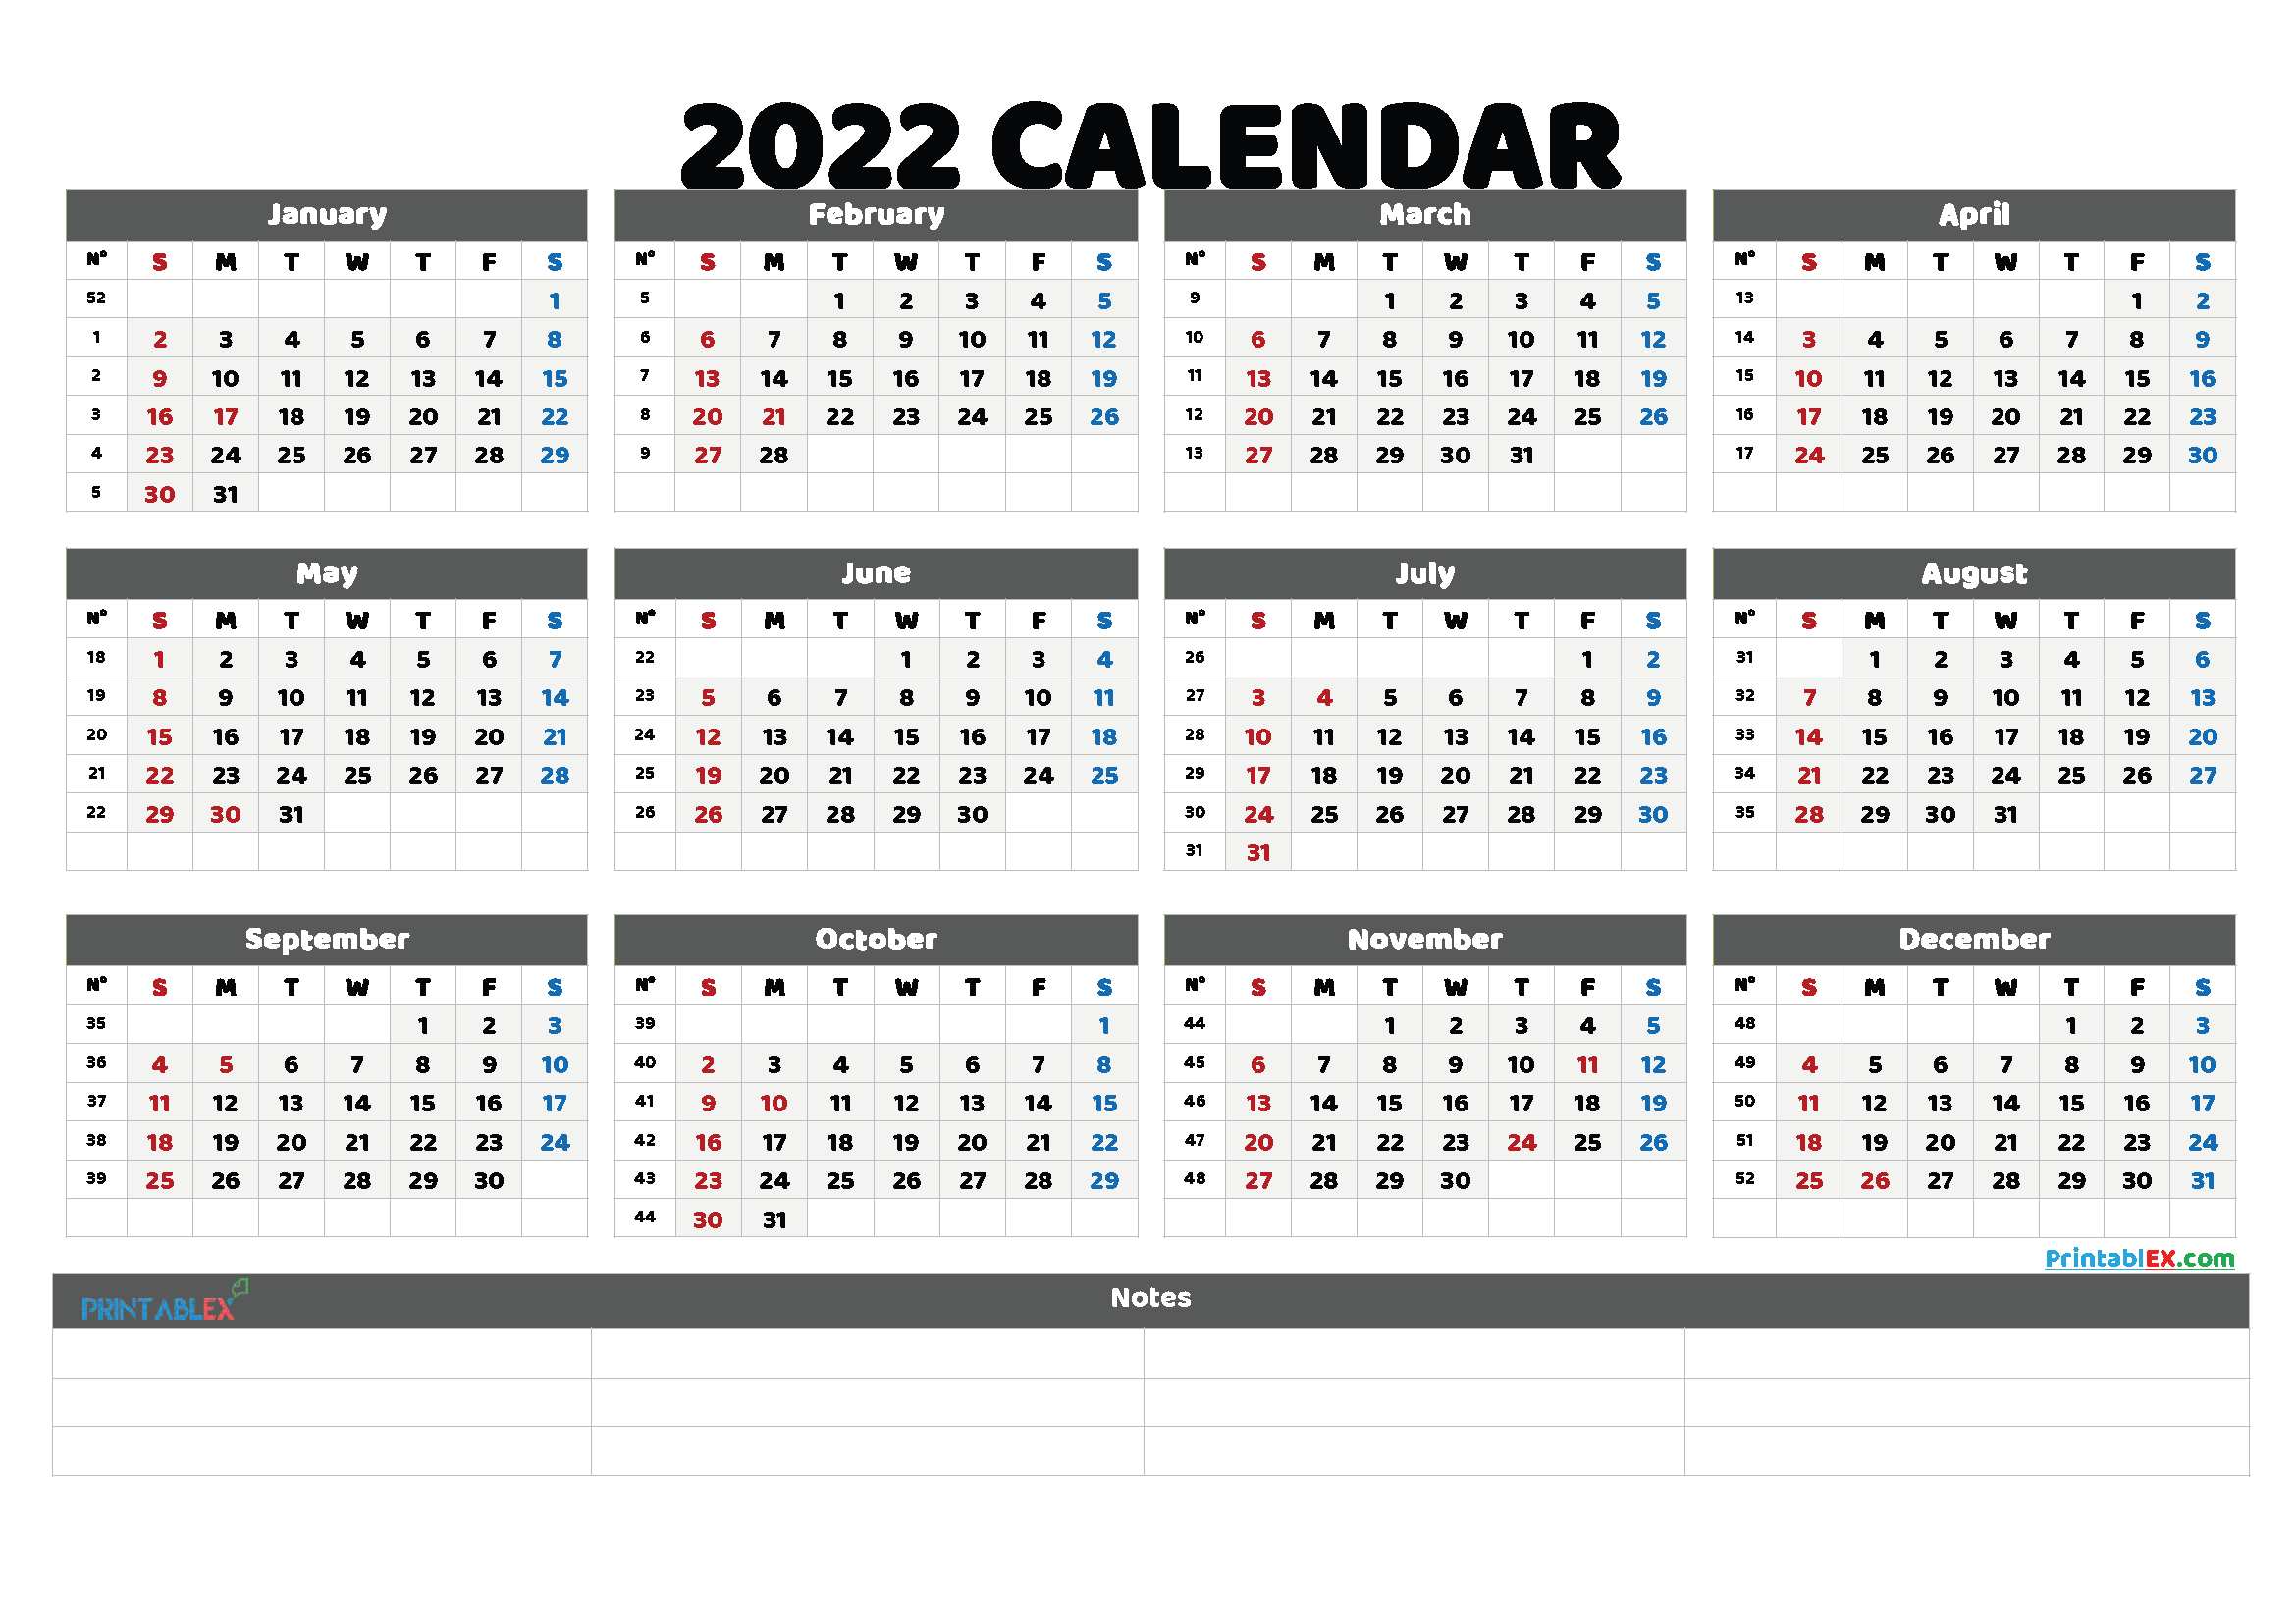 2022 Free Printable Yearly Calendar with Week Numbers (Font: inkfr)